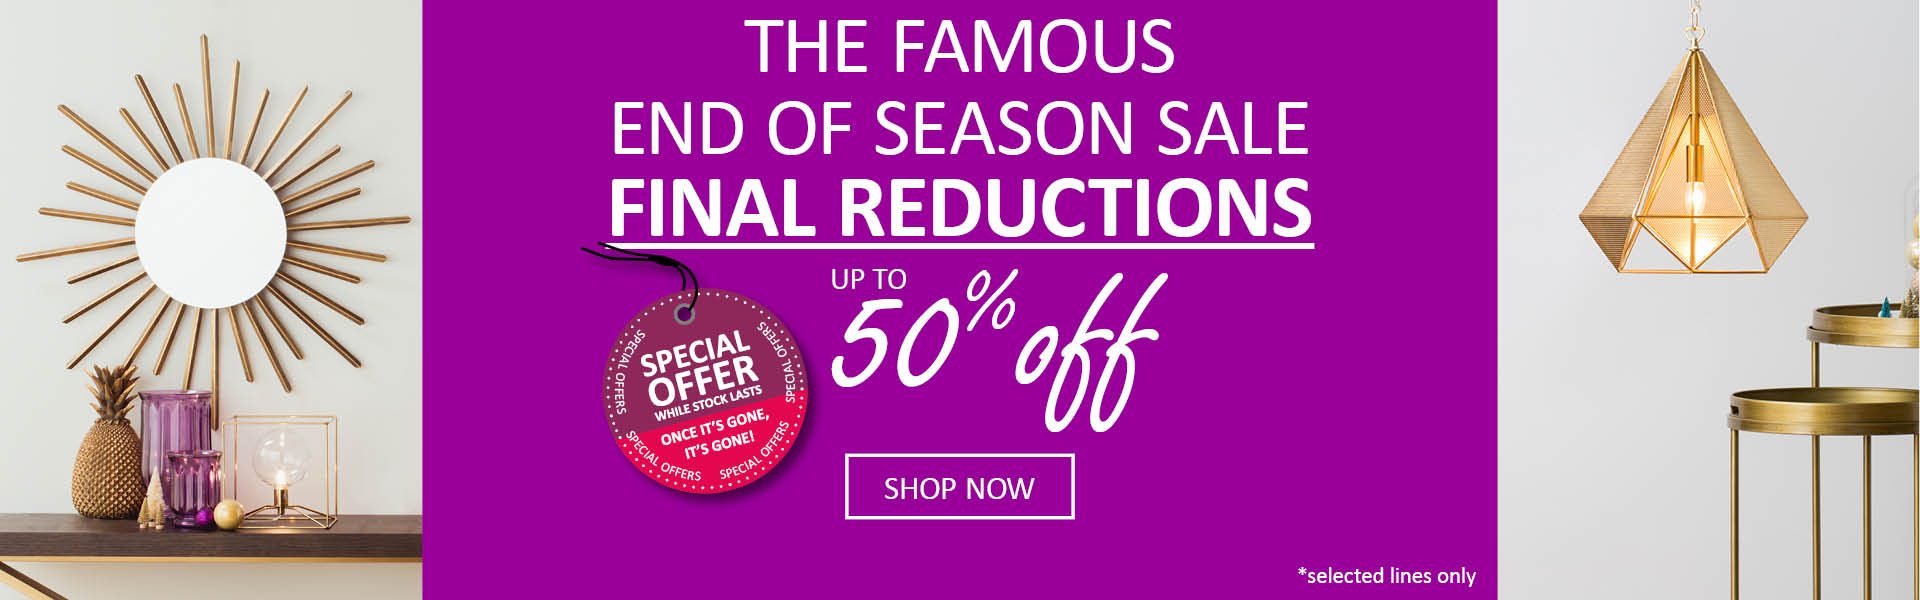 The Famous End of Season Final Reductions. Up to 50% off. Shop Now. Hurry! Limited Time Only *selected lines only